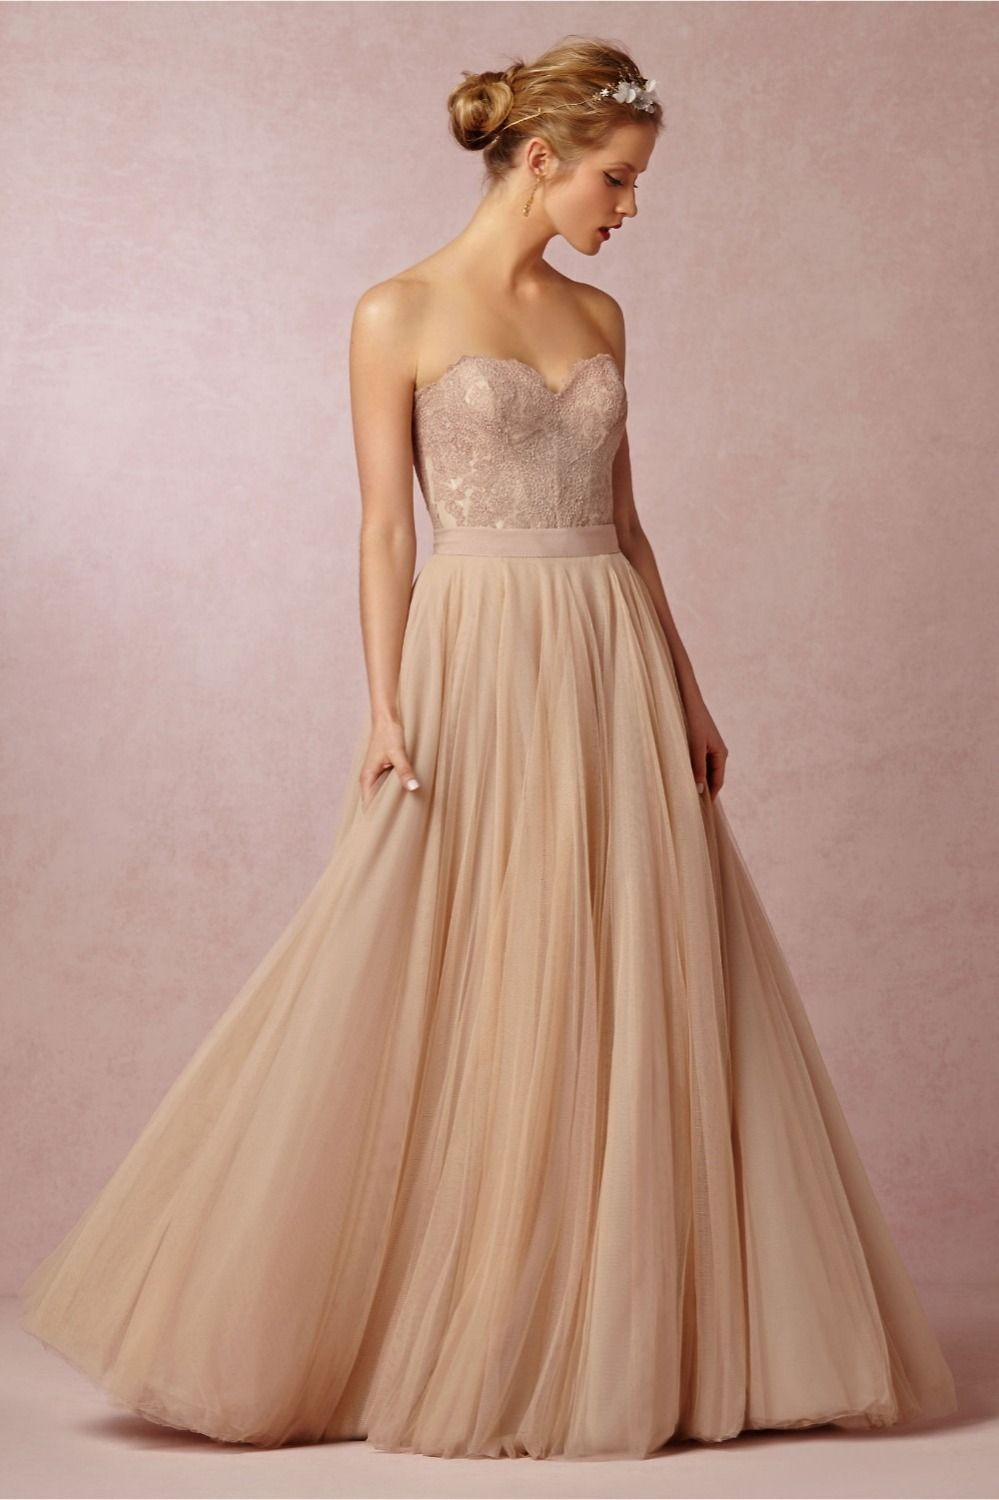 Find More Wedding Dresses Information About Charming Simple A Line Wedding Dress Sweetheart Neckline C Wedding Dresses Bhldn Wedding Dress Wedding Dresses 2014 [ 1500 x 999 Pixel ]